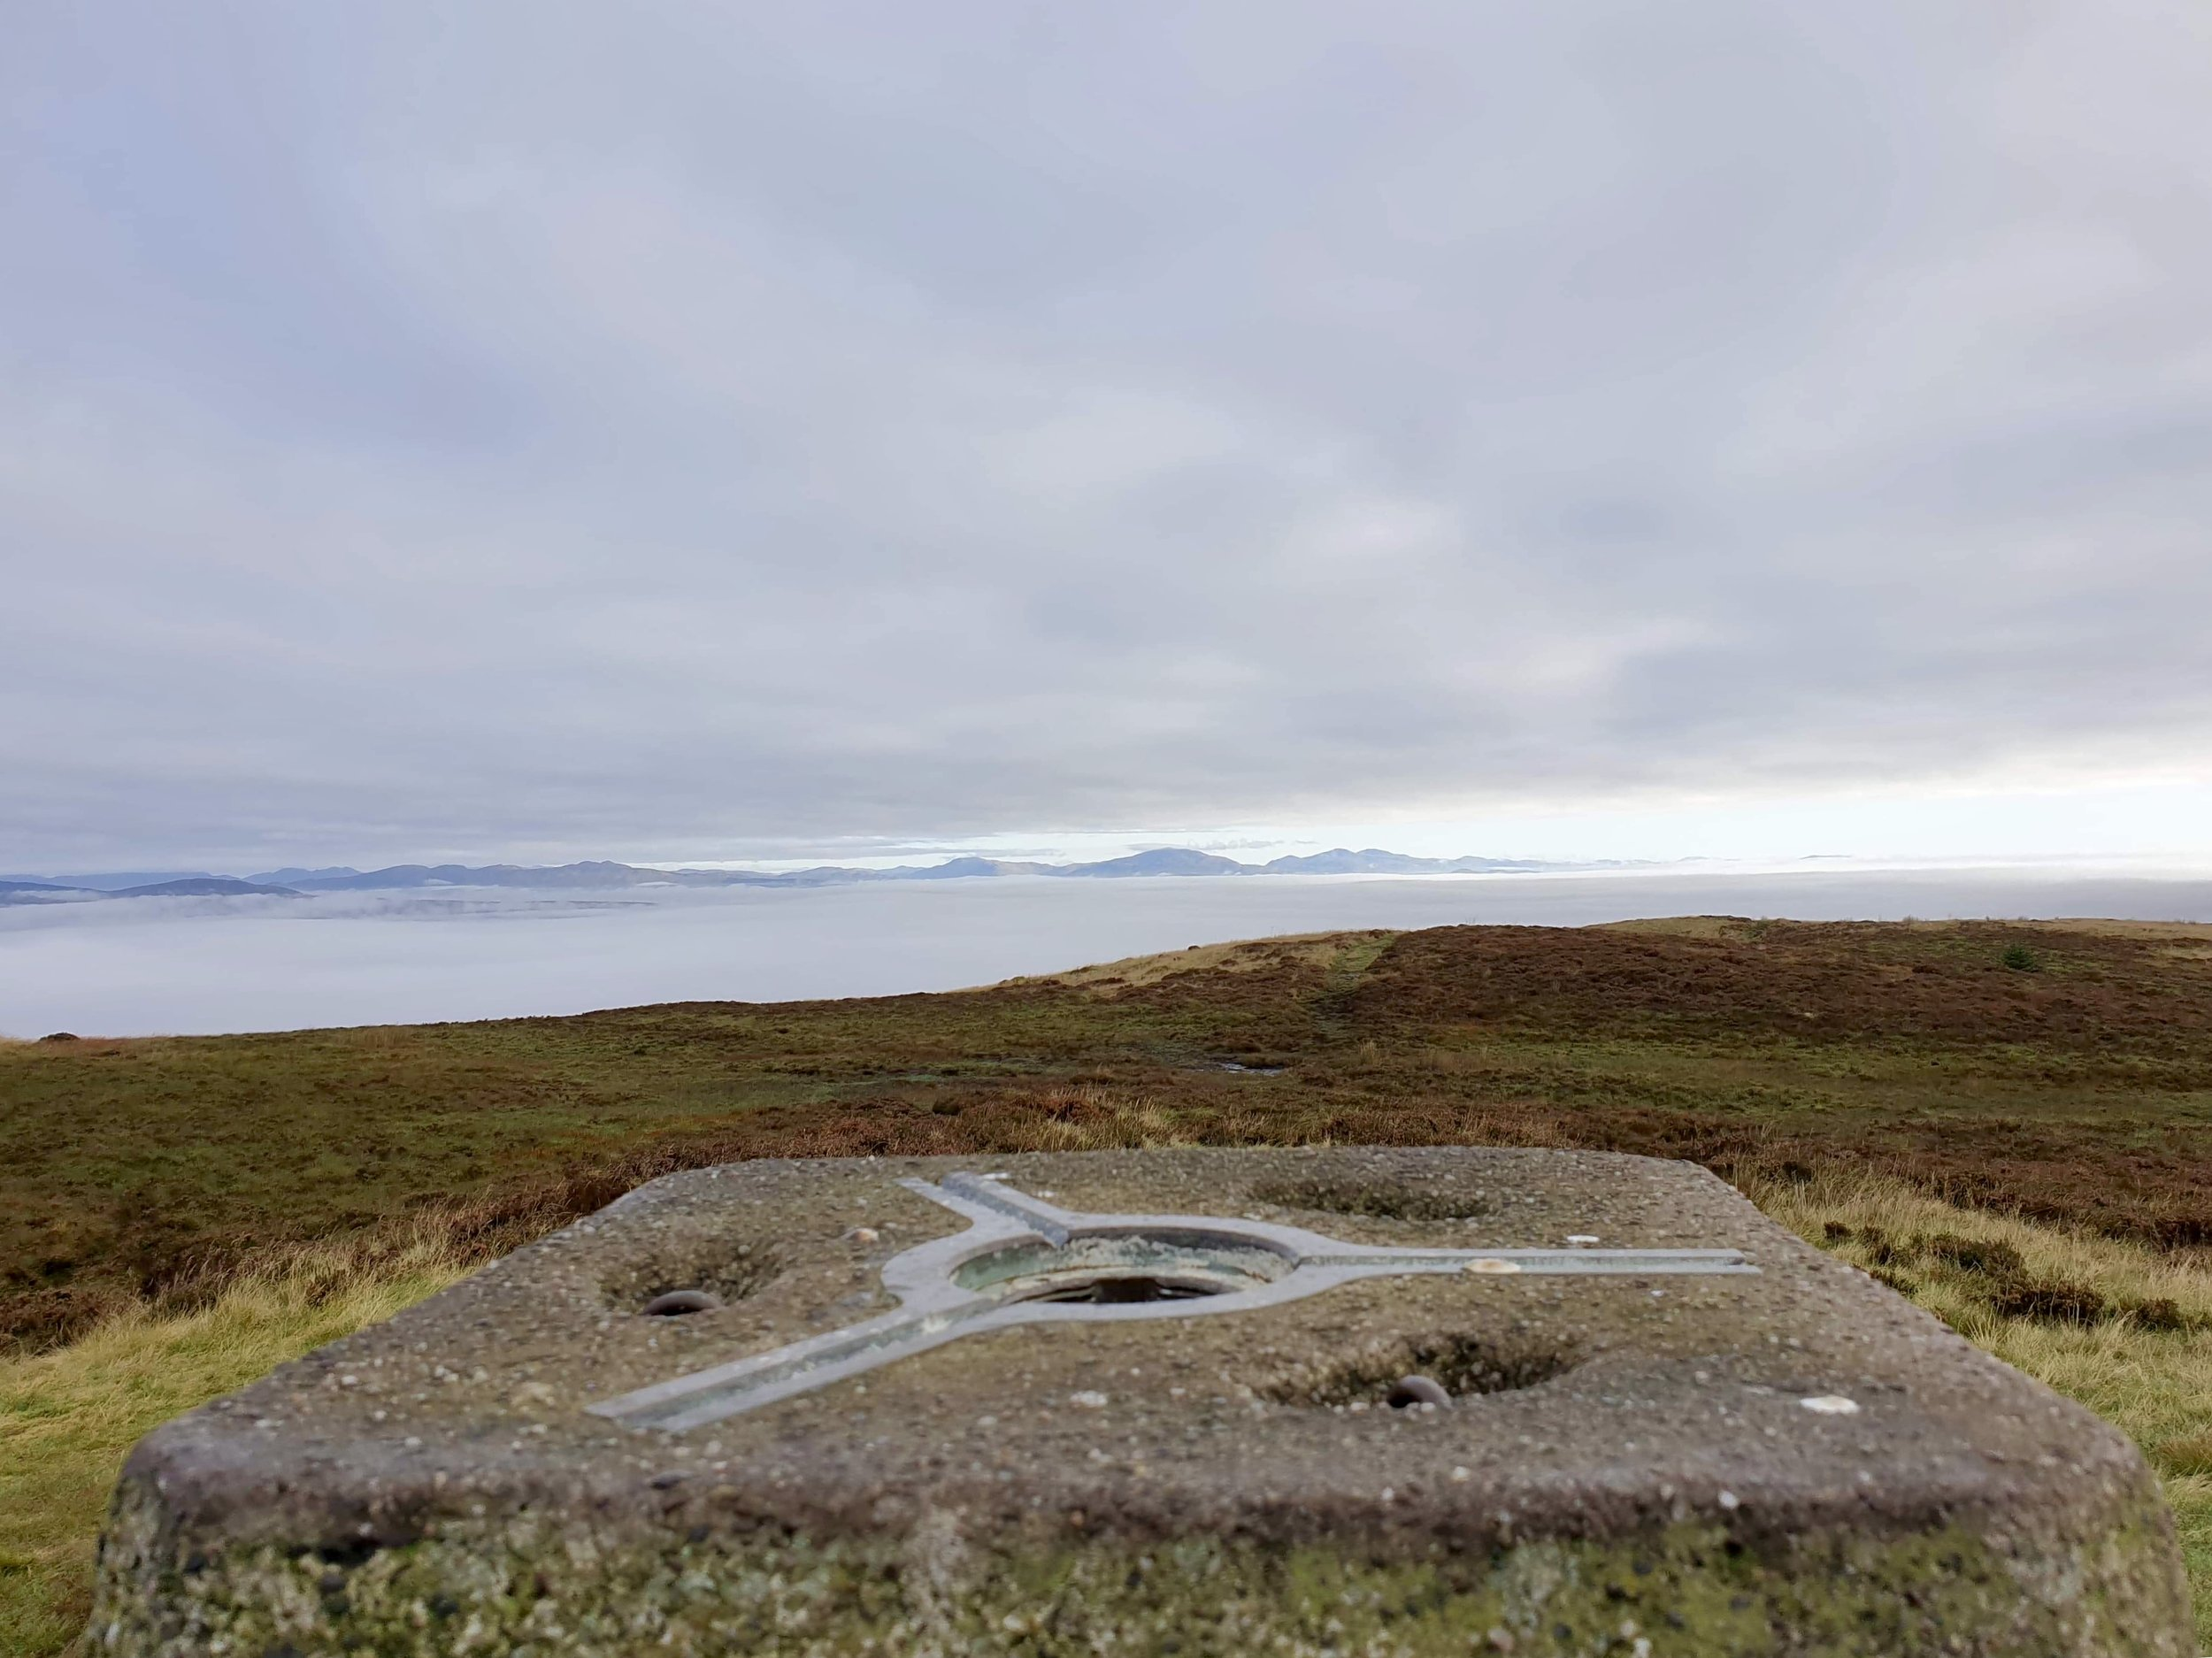 Trig Point looking North with Cloud Inversion